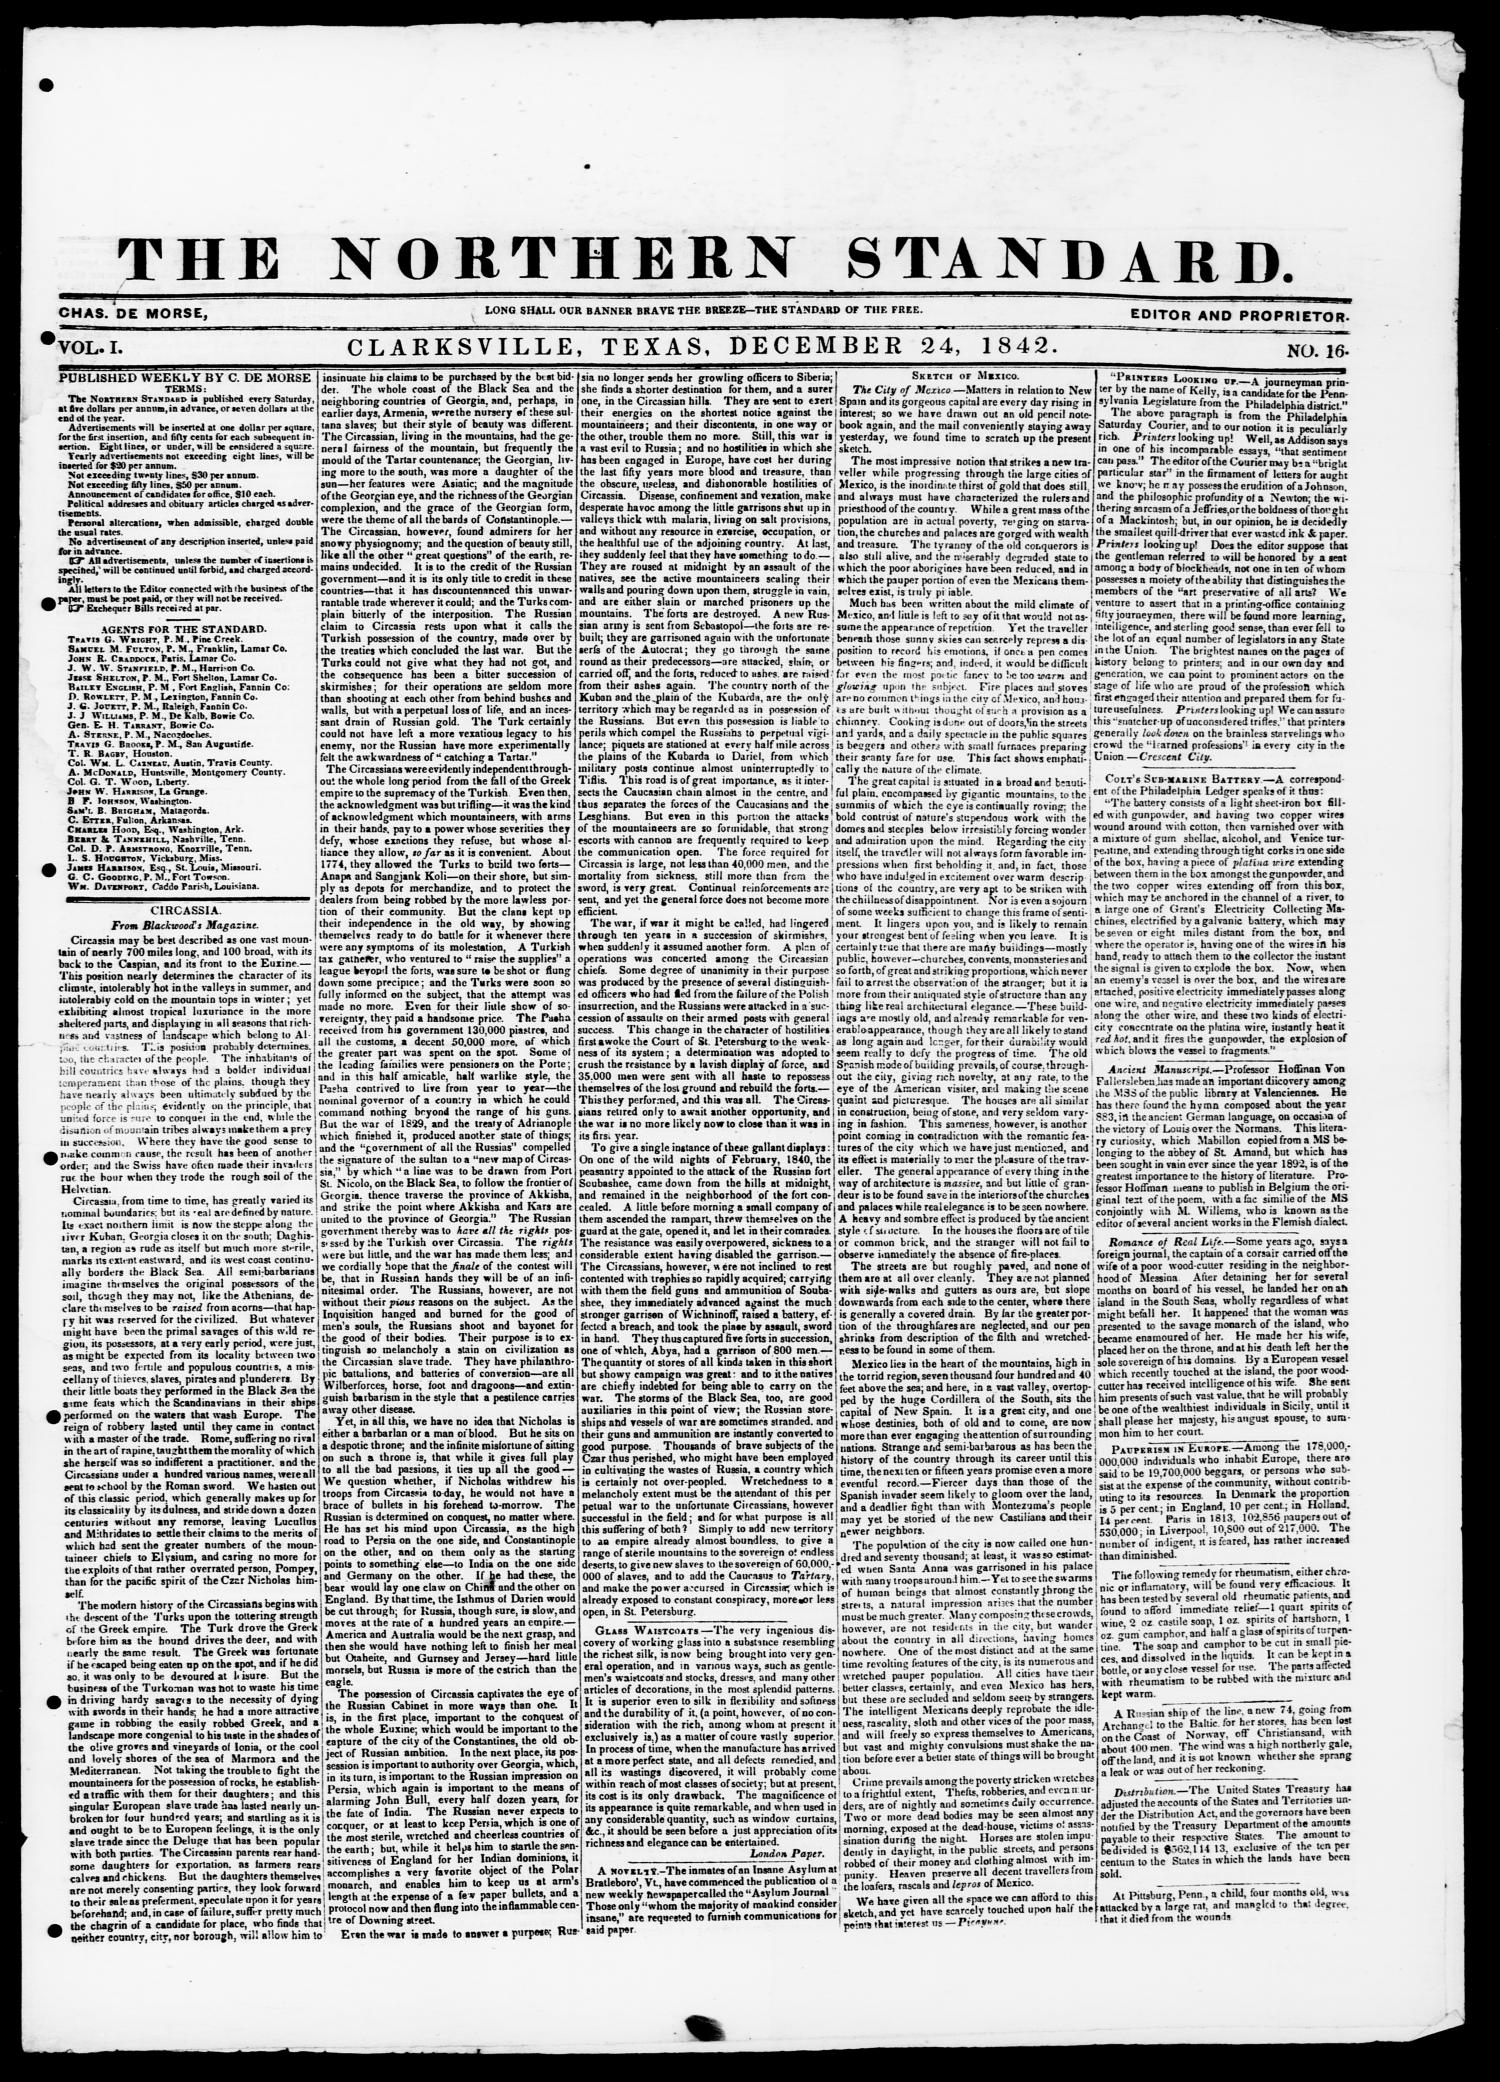 The Northern Standard. (Clarksville, Tex.), Vol. 1, No. 16, Ed. 1, Saturday, December 24, 1842                                                                                                      [Sequence #]: 1 of 4